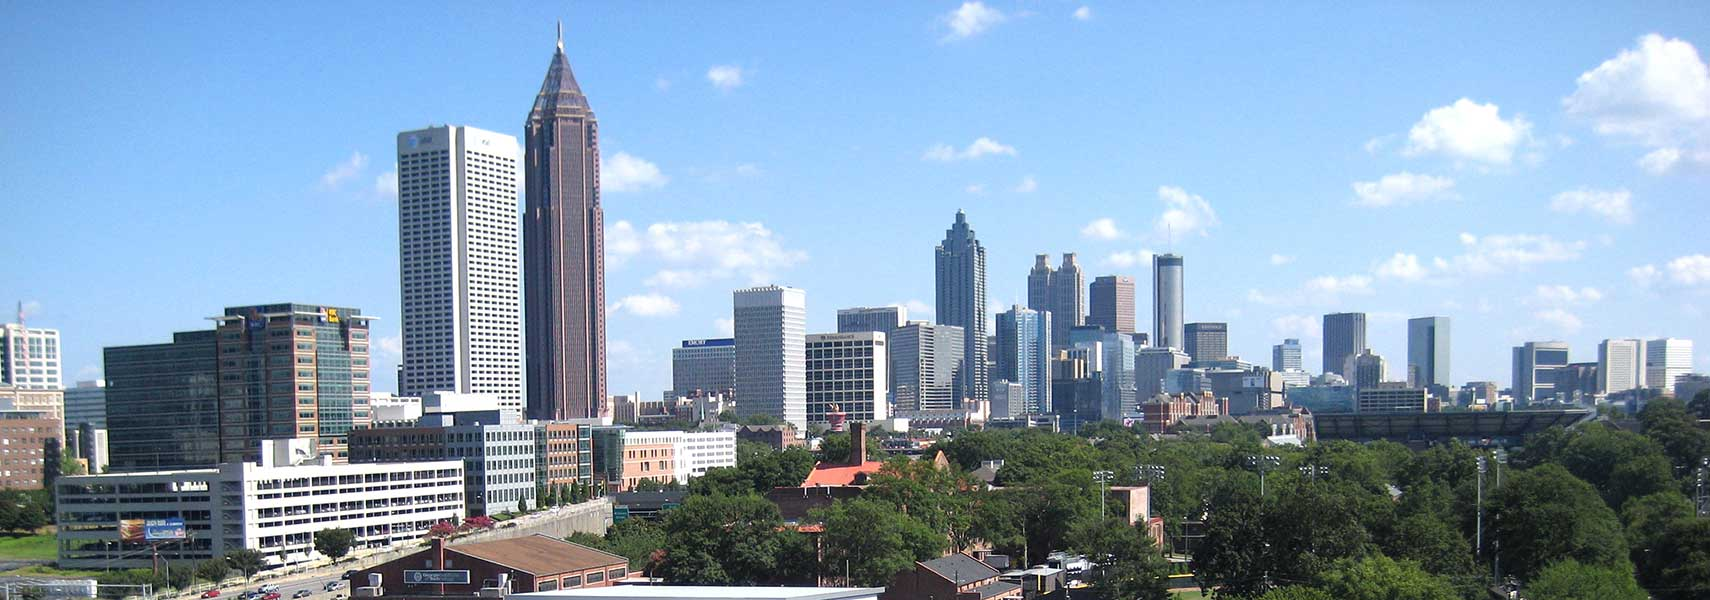 Google Map of the City of Atlanta Georgia USA  Nations Online